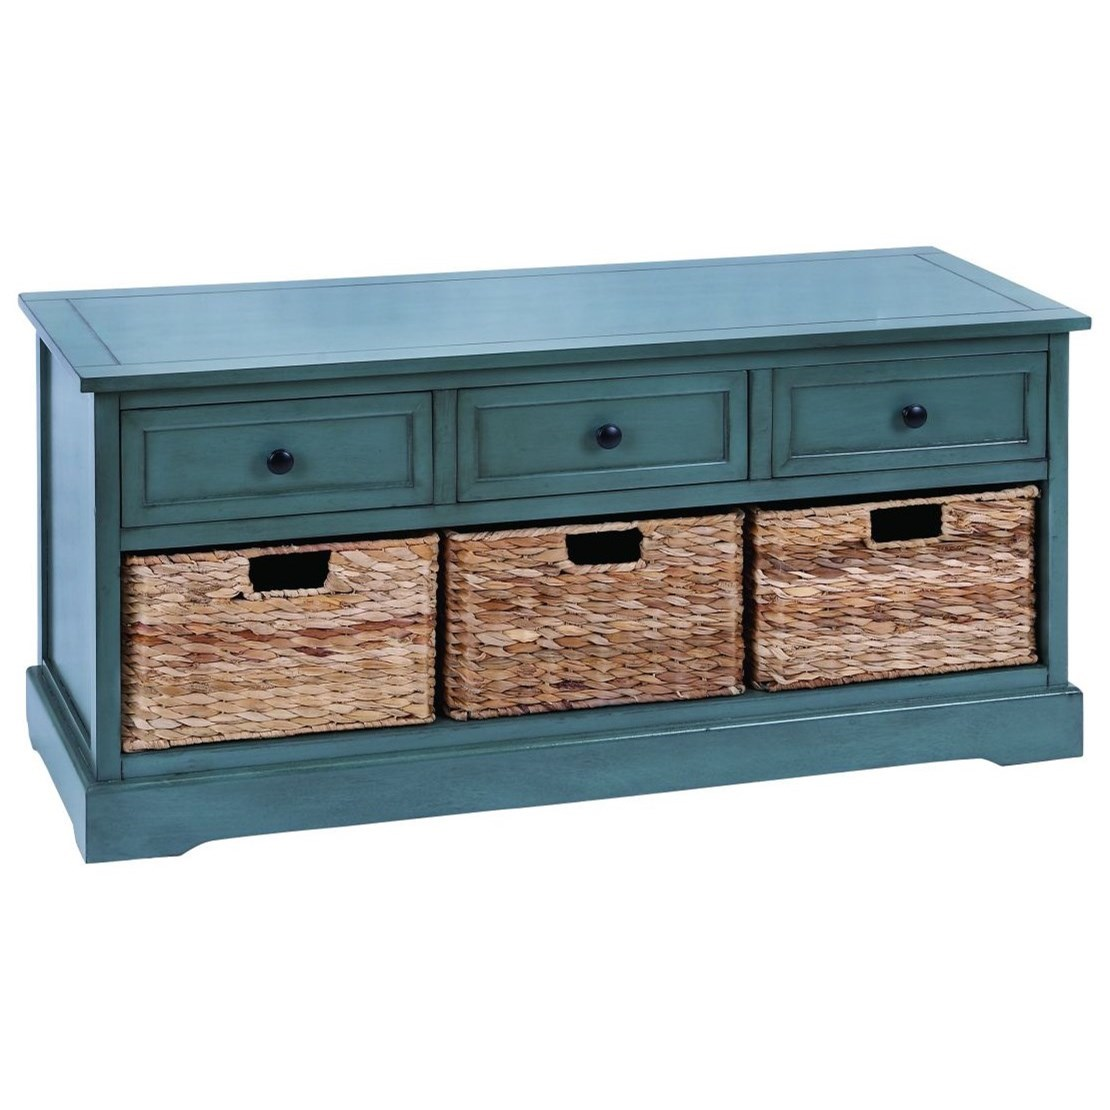 Wood/Wicker Basket Chest